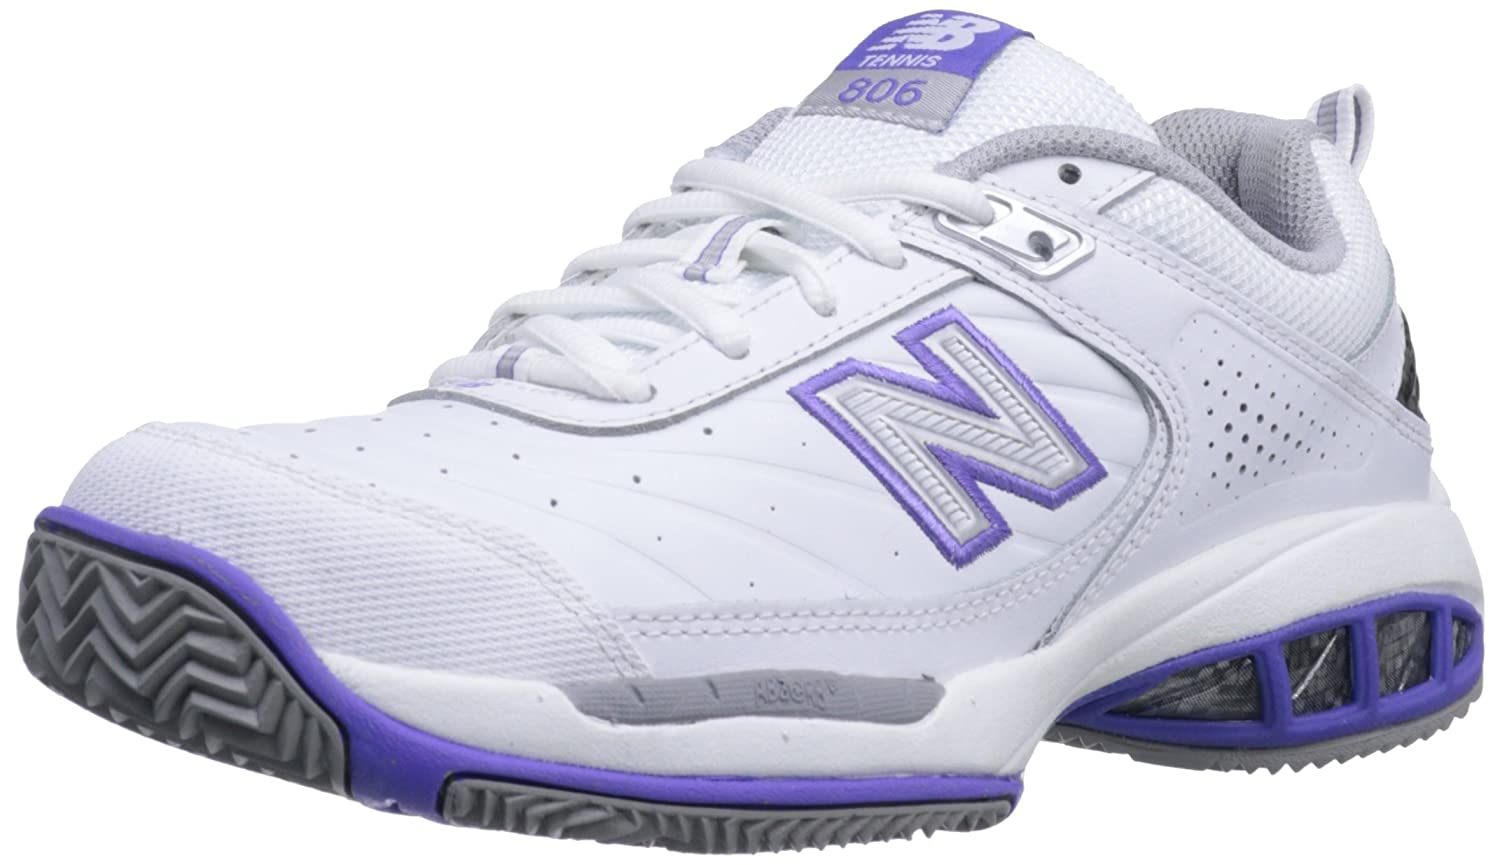 New Balance Women's WC806 Tennis-W Tennis Shoe B0098G2I7A 6.5 D US|White